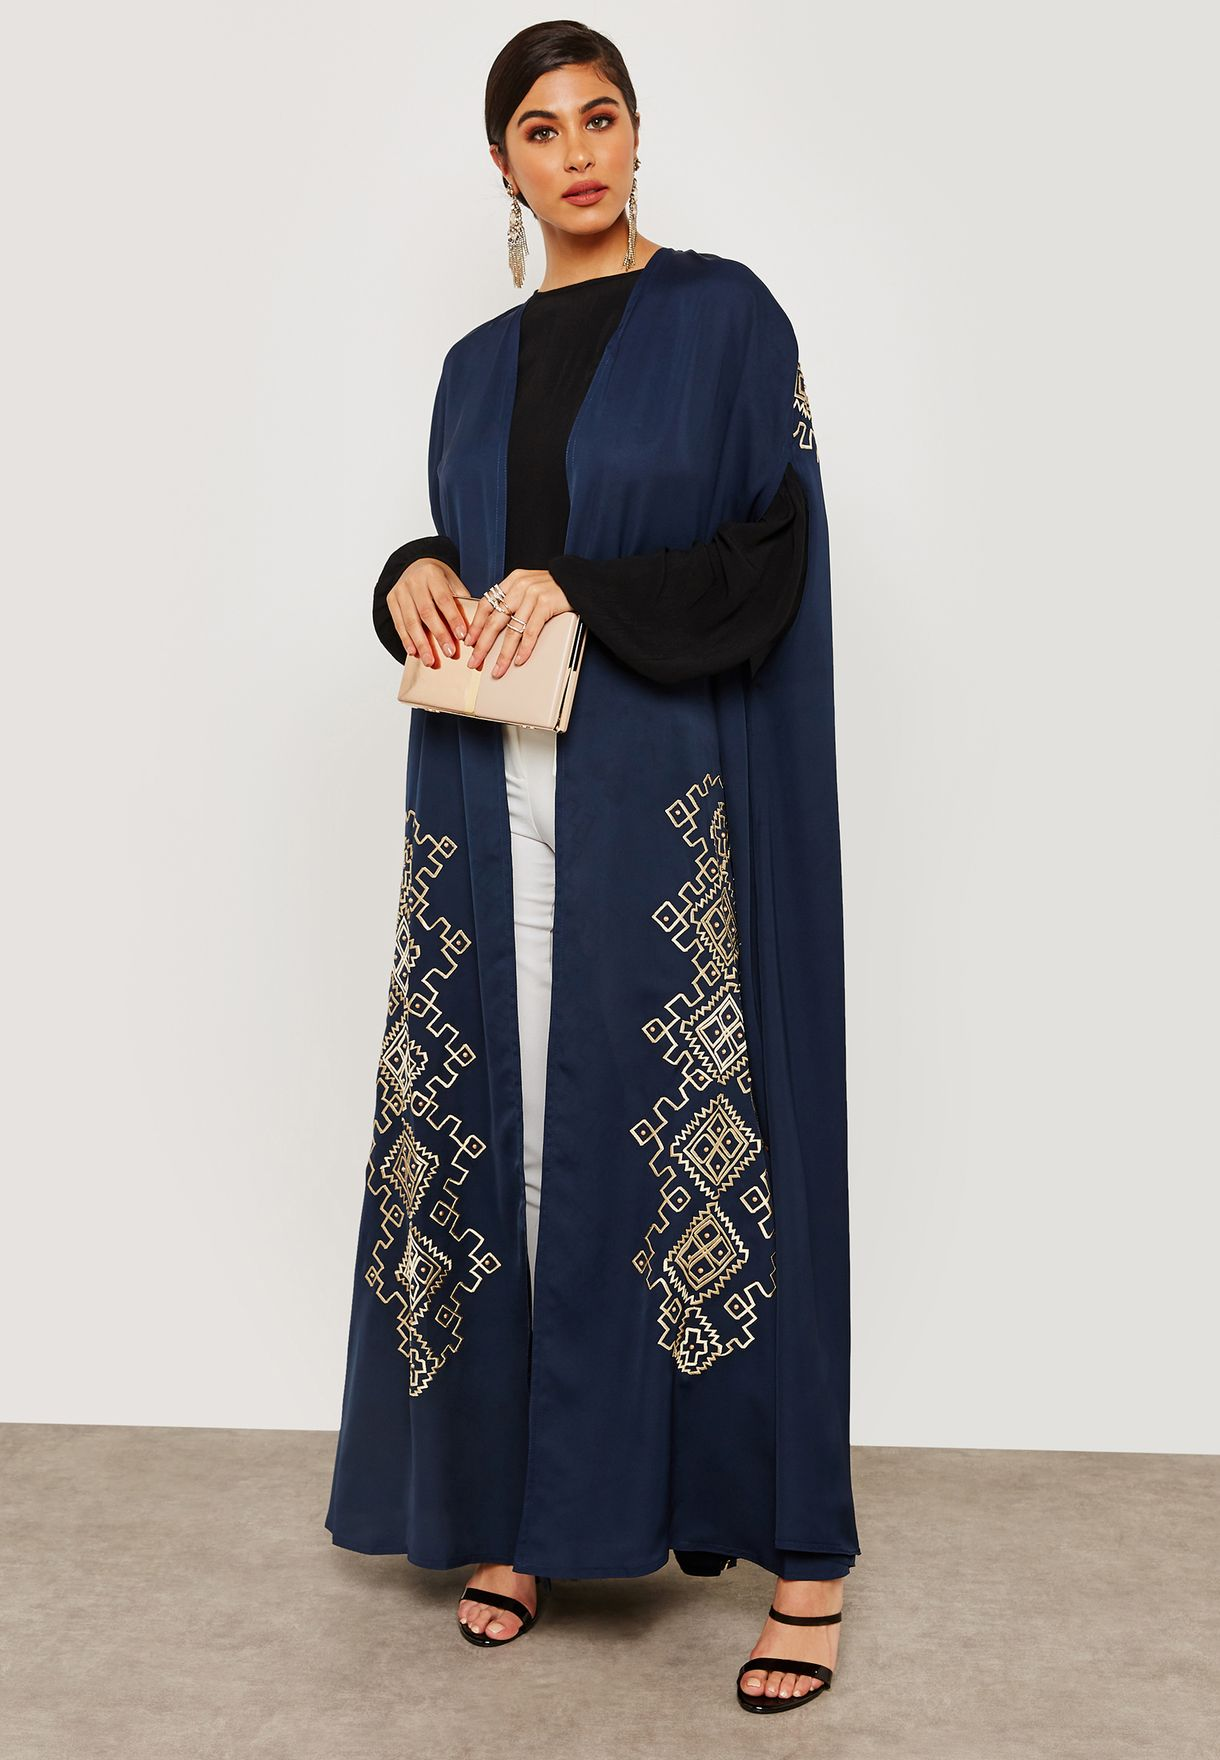 Shop Hayas Closet Navy Embroidered Cape Abaya Awn 598 For Women